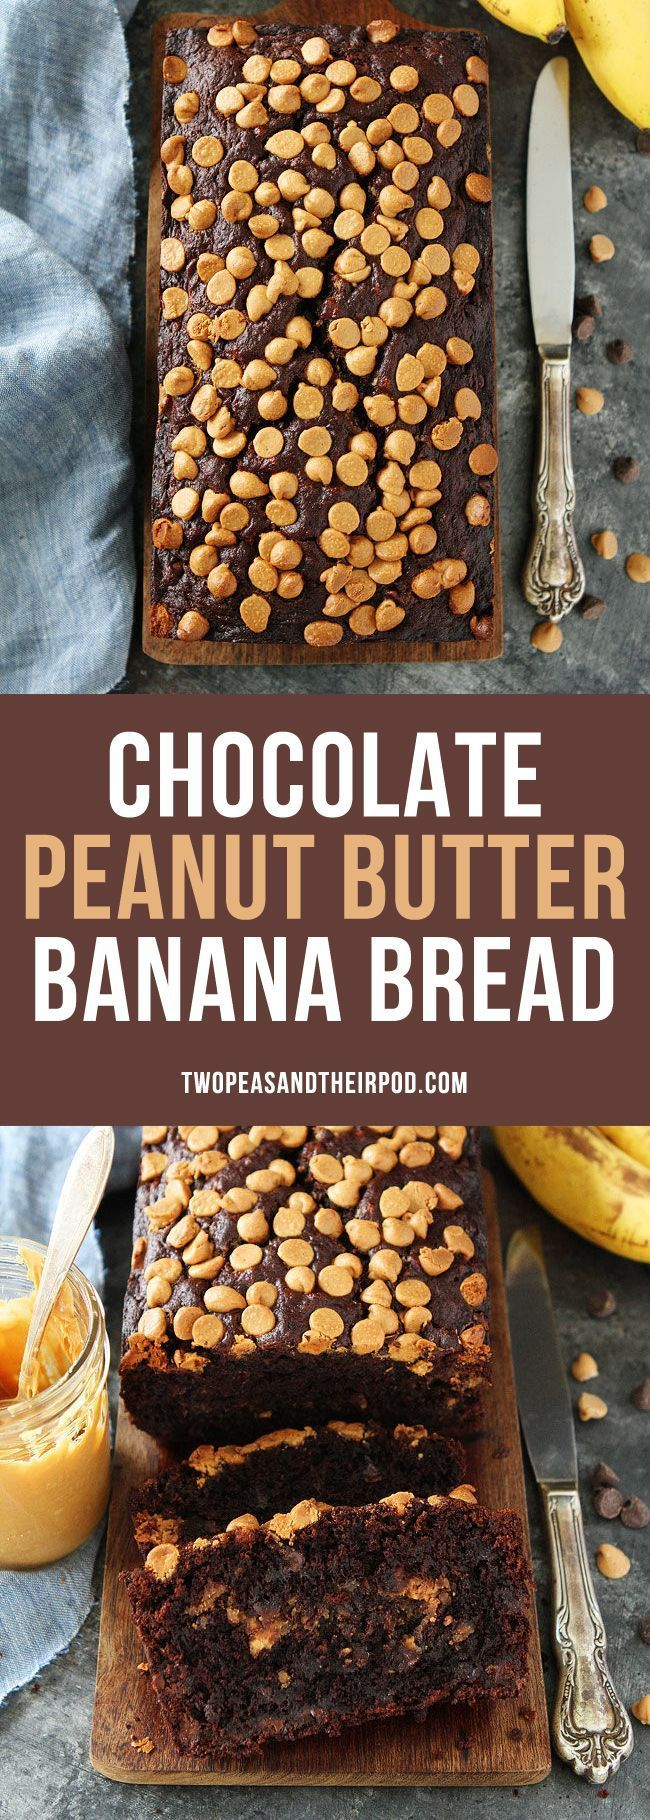 Chocolate Peanut Butter Banana Bread is the BEST banana bread recipe. This rich, chocolate banana bread has a swirl of peanut butter inside and peanut butter chips on top!